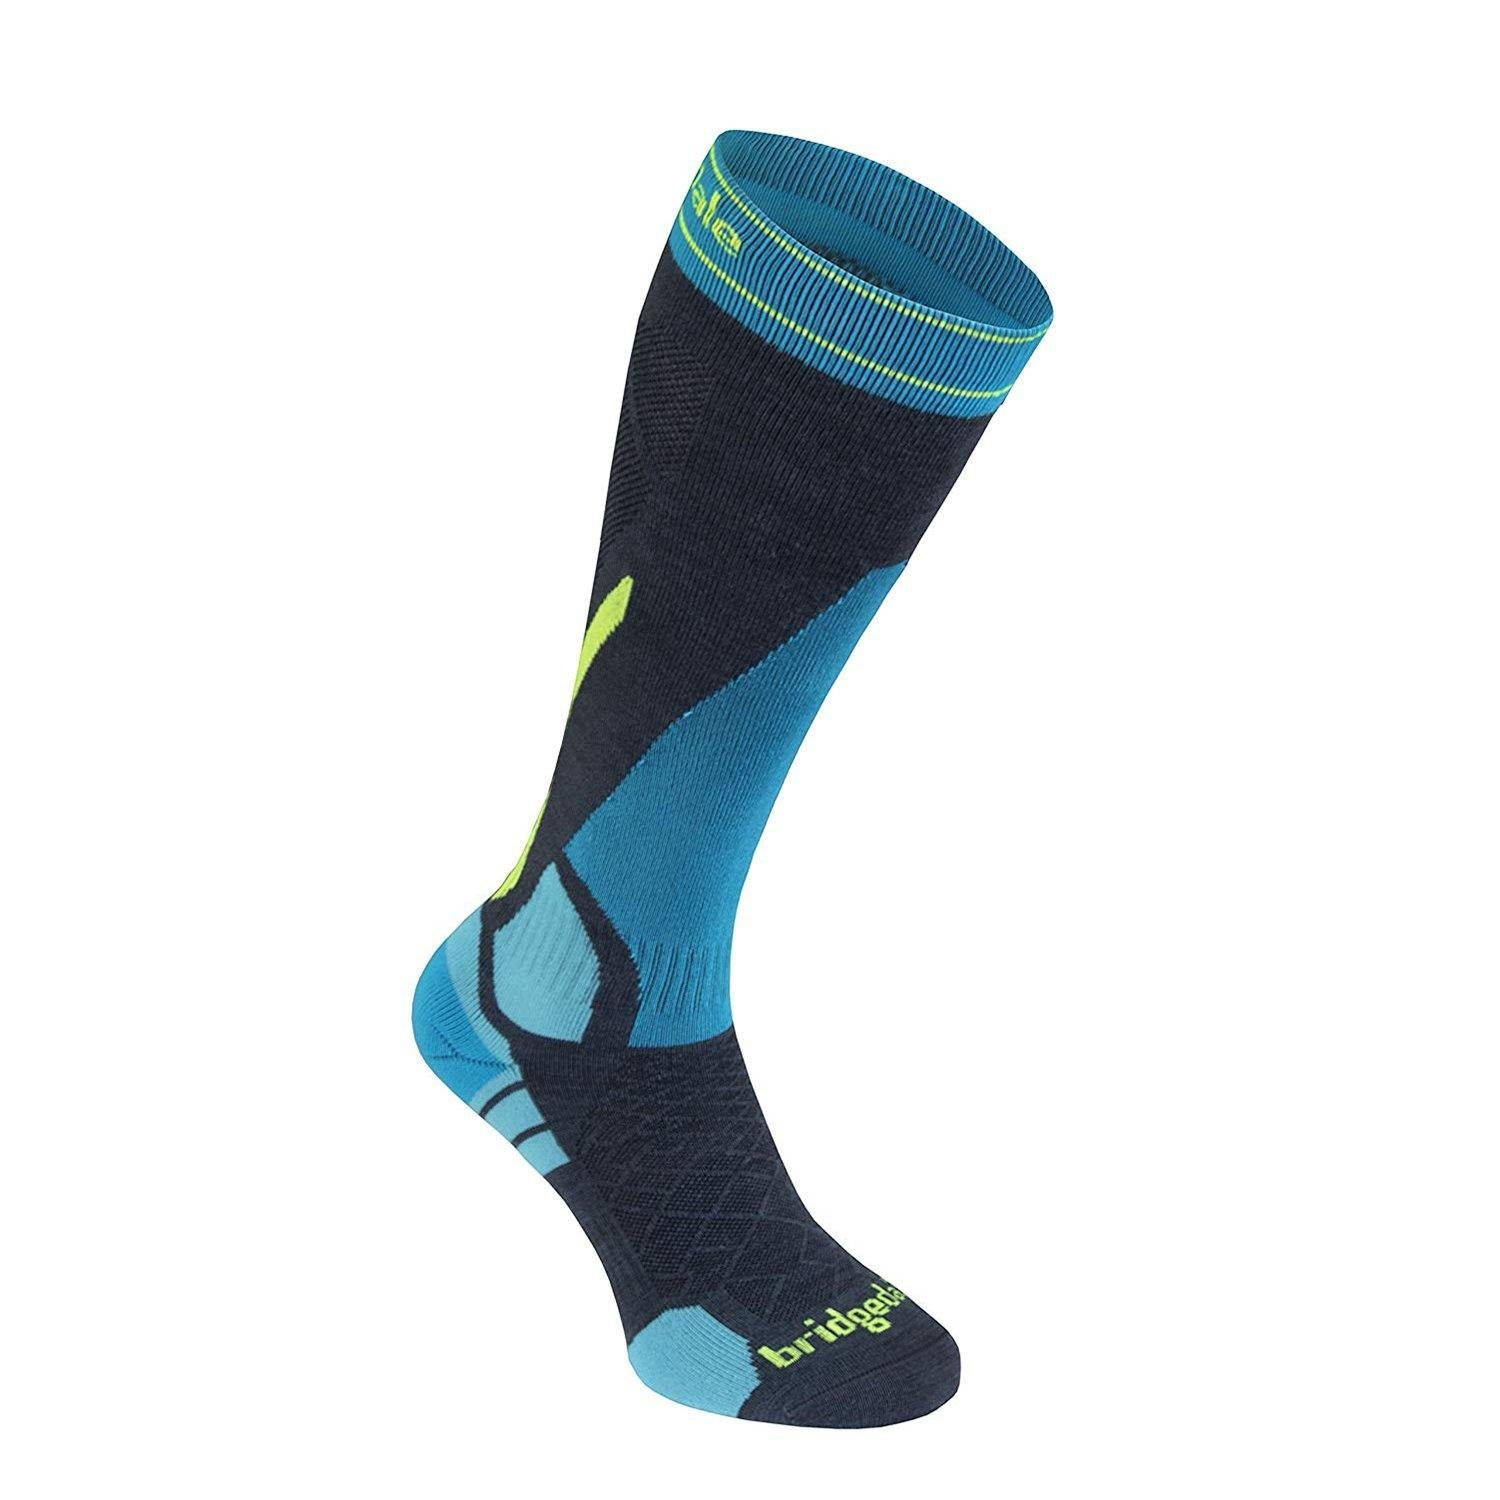 Bridgedale Men Merino Fusion Ski Socks - Vertige Light (Charcoal/Blue)